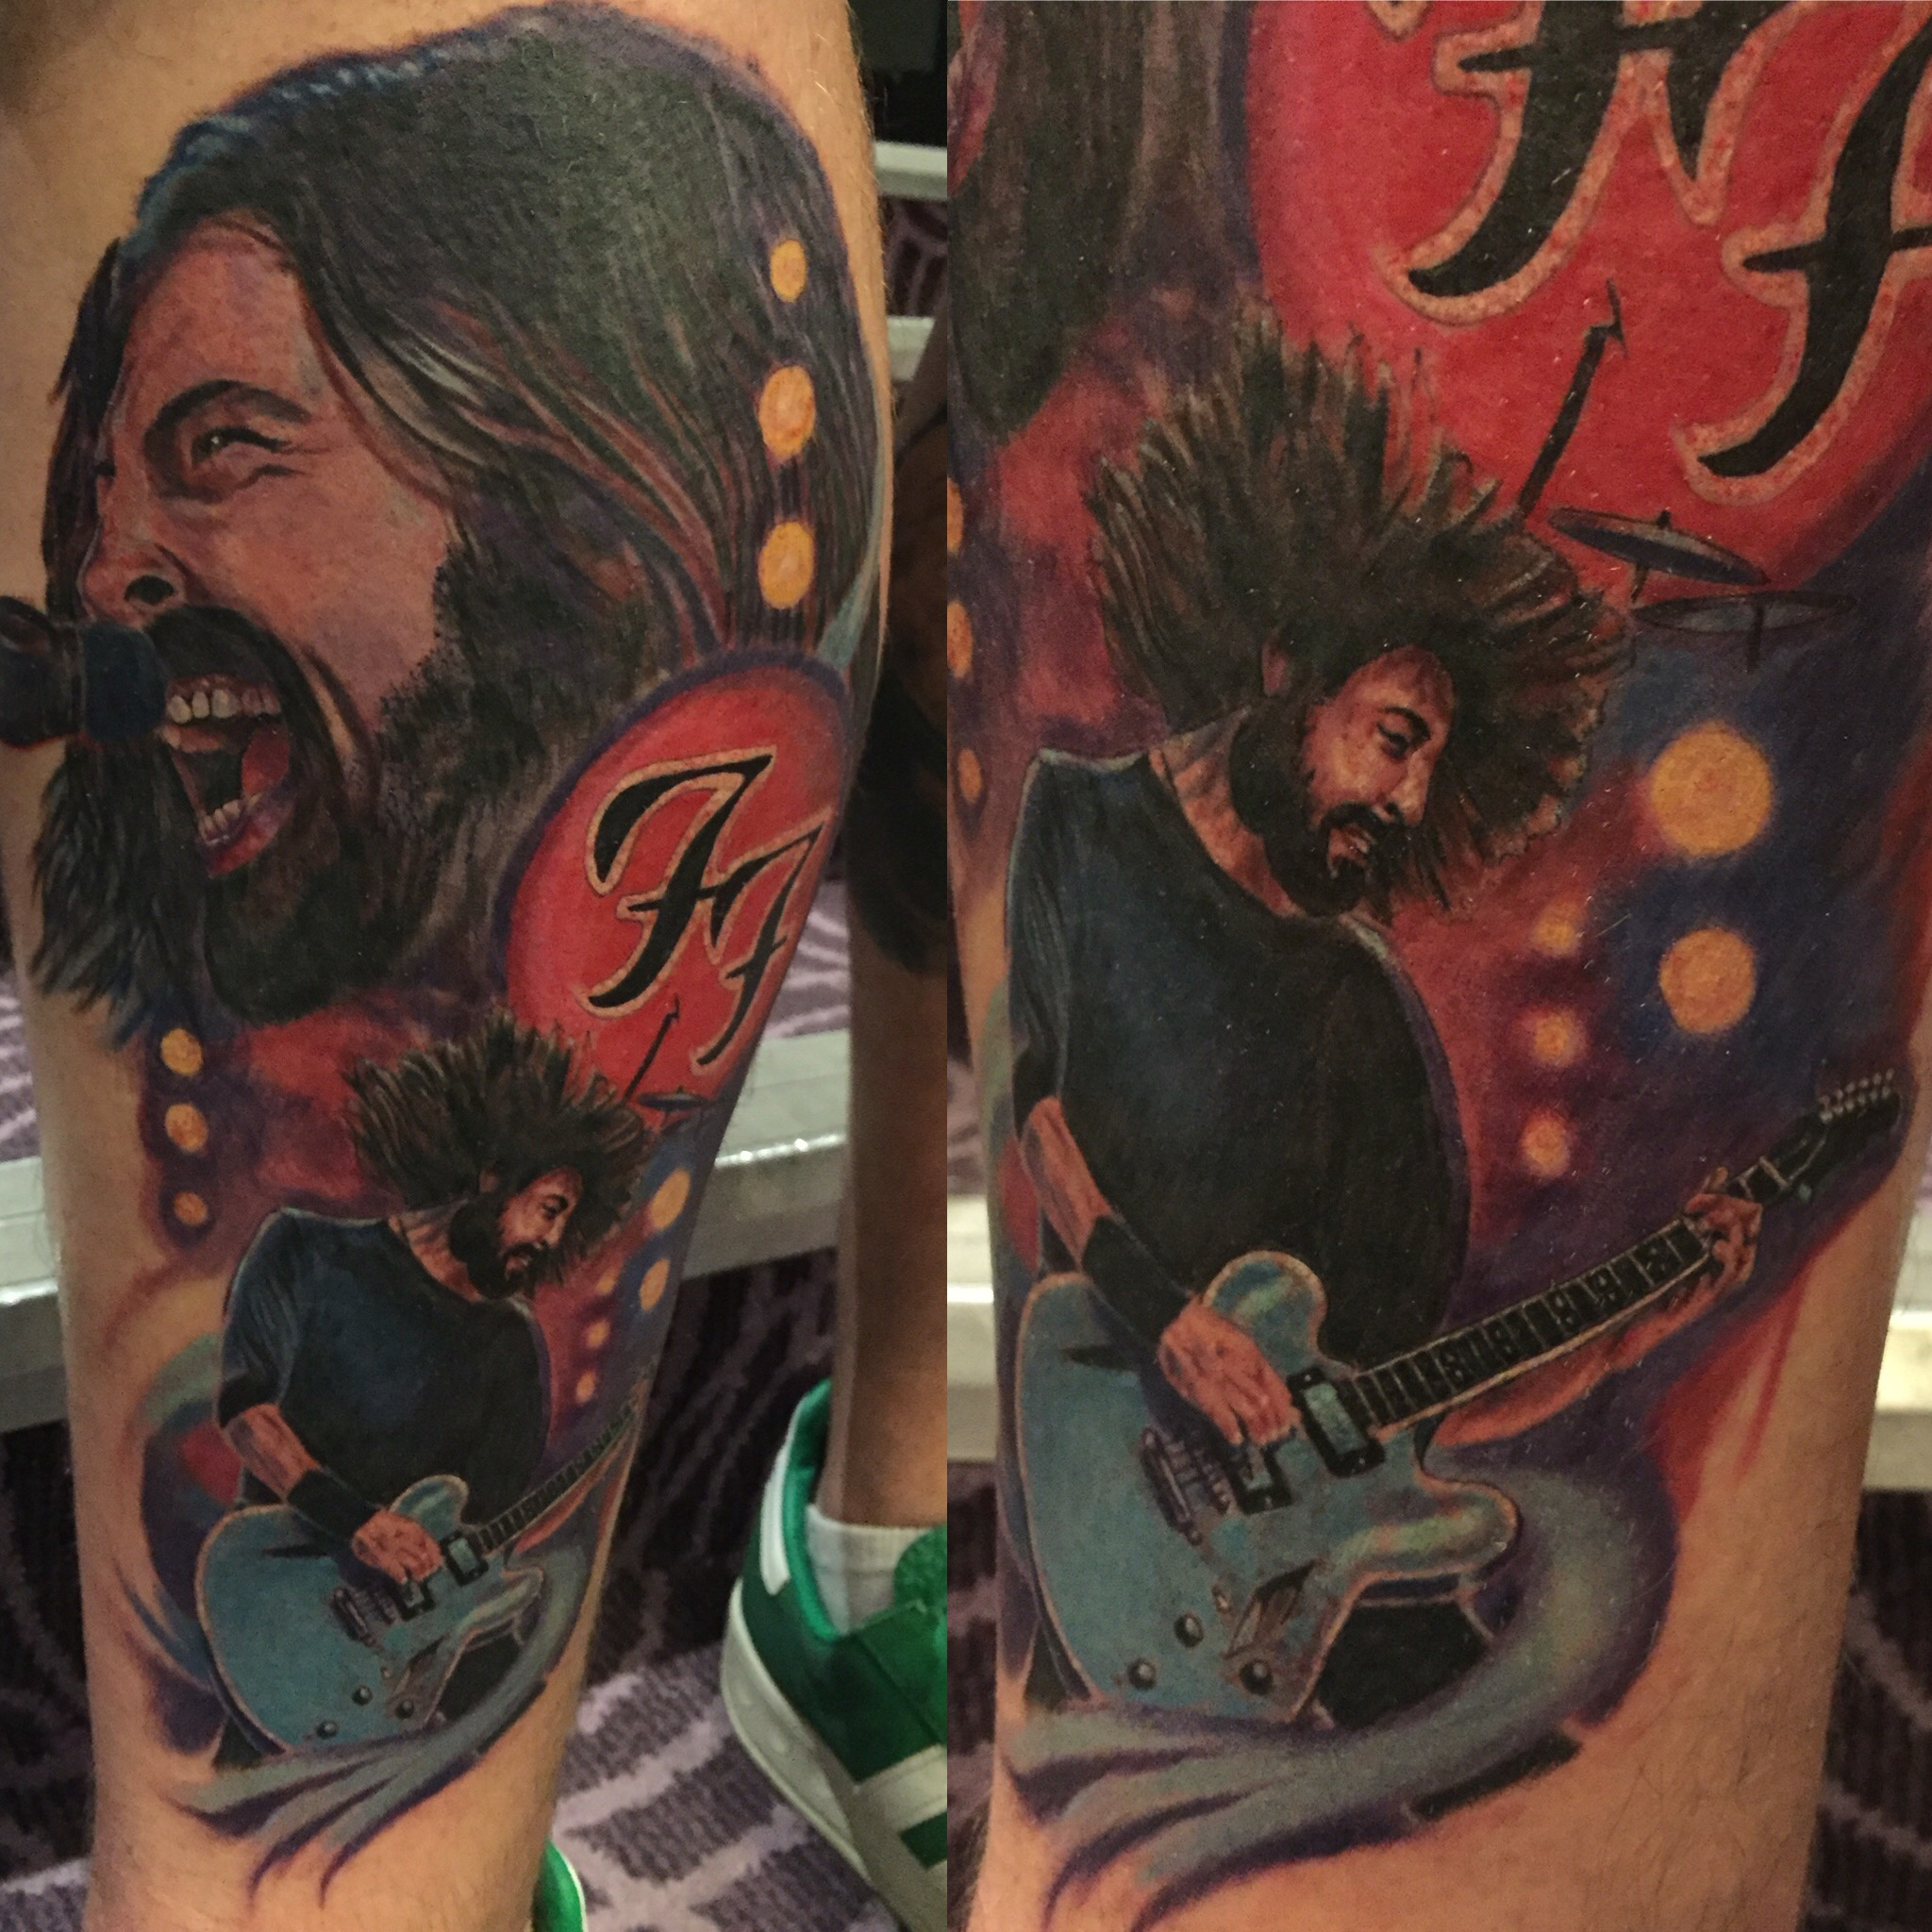 dave grohl tattoo jason parry